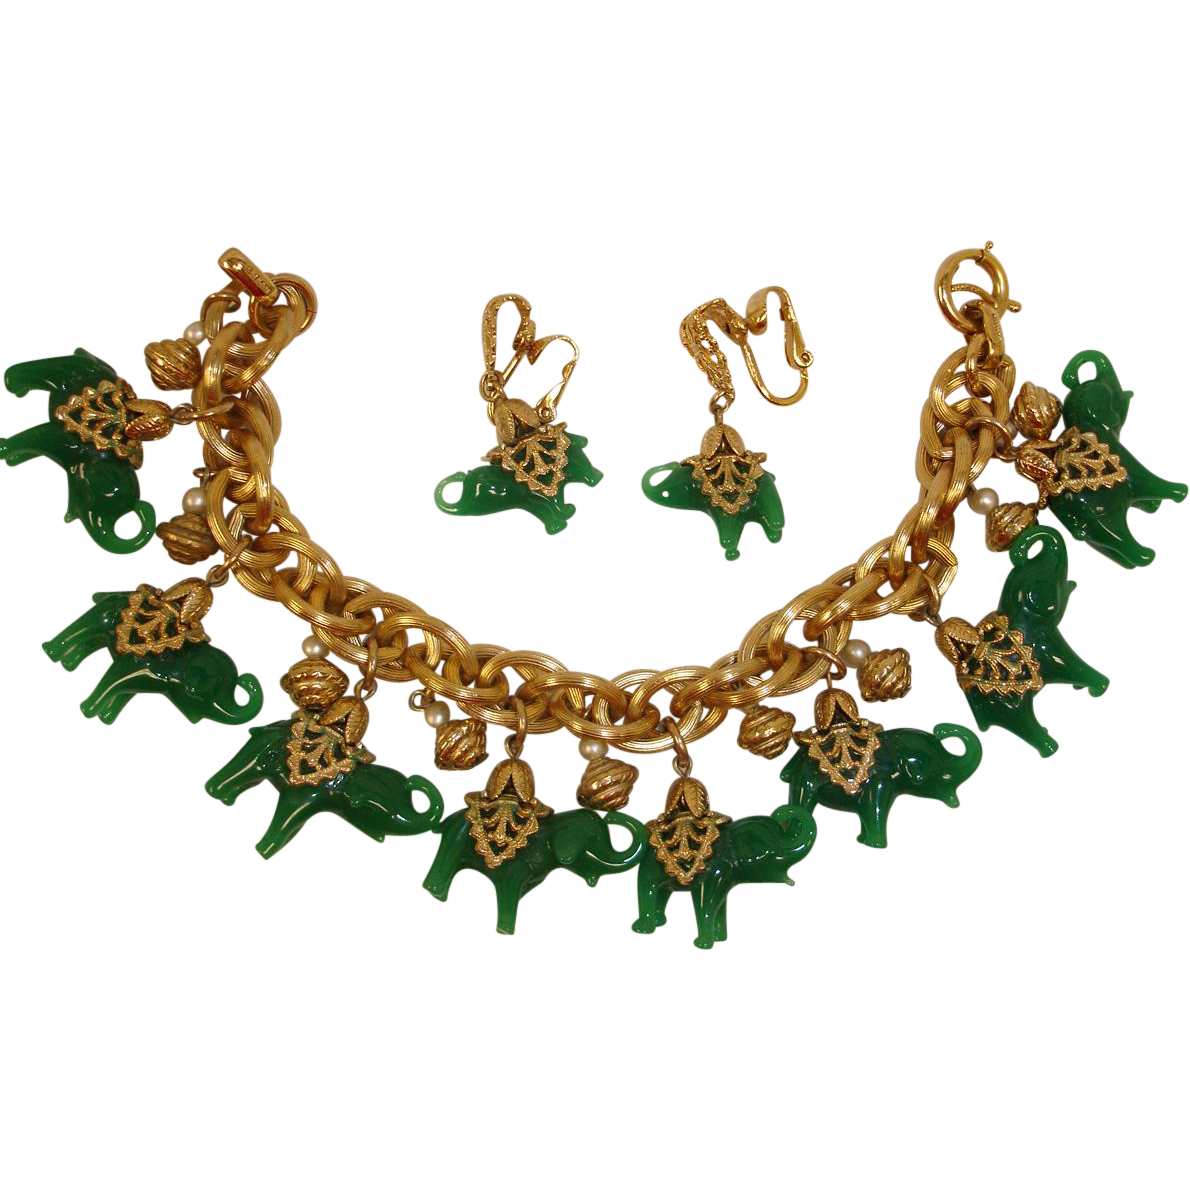 Exceptional NAPIER Green Elephant Charm Bracelet and Earrings Set – Vintage Napier Demi Parure Jewelry